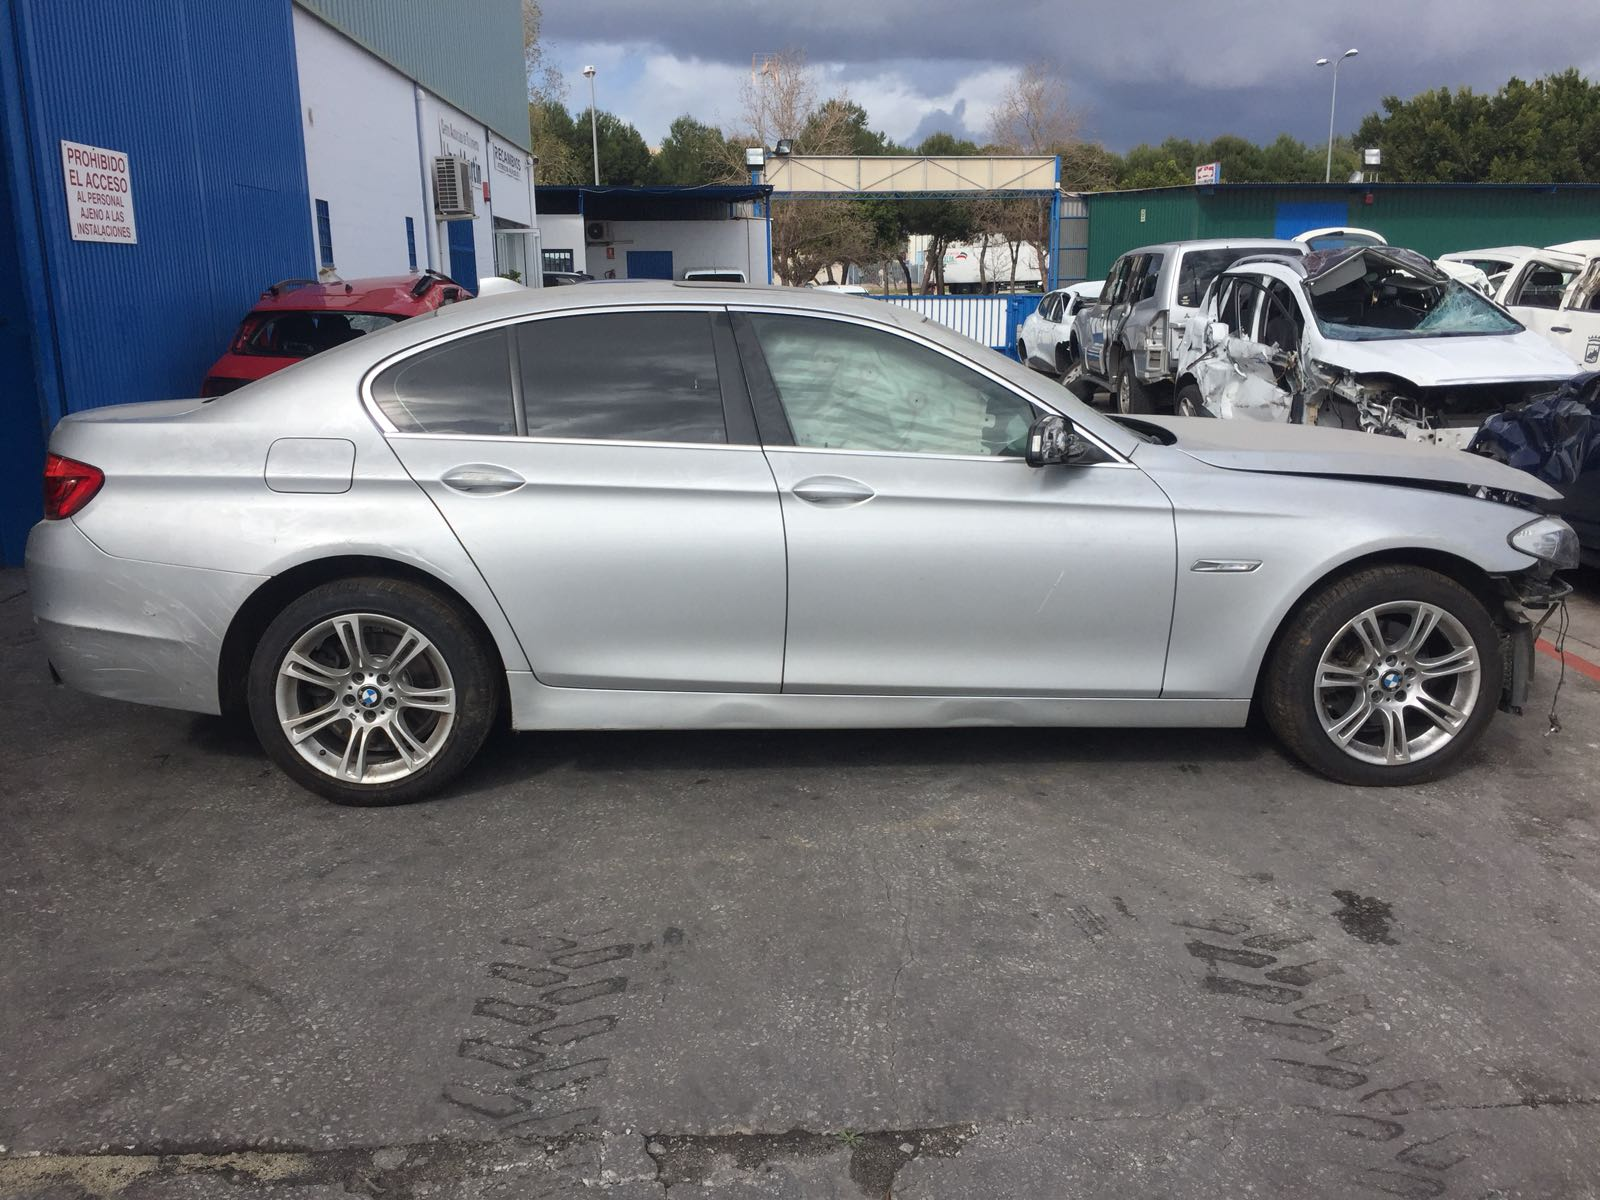 BMW 520D (F10) TwinPower Turbo 184cv 2013 (DESPIECE COMPLETO)